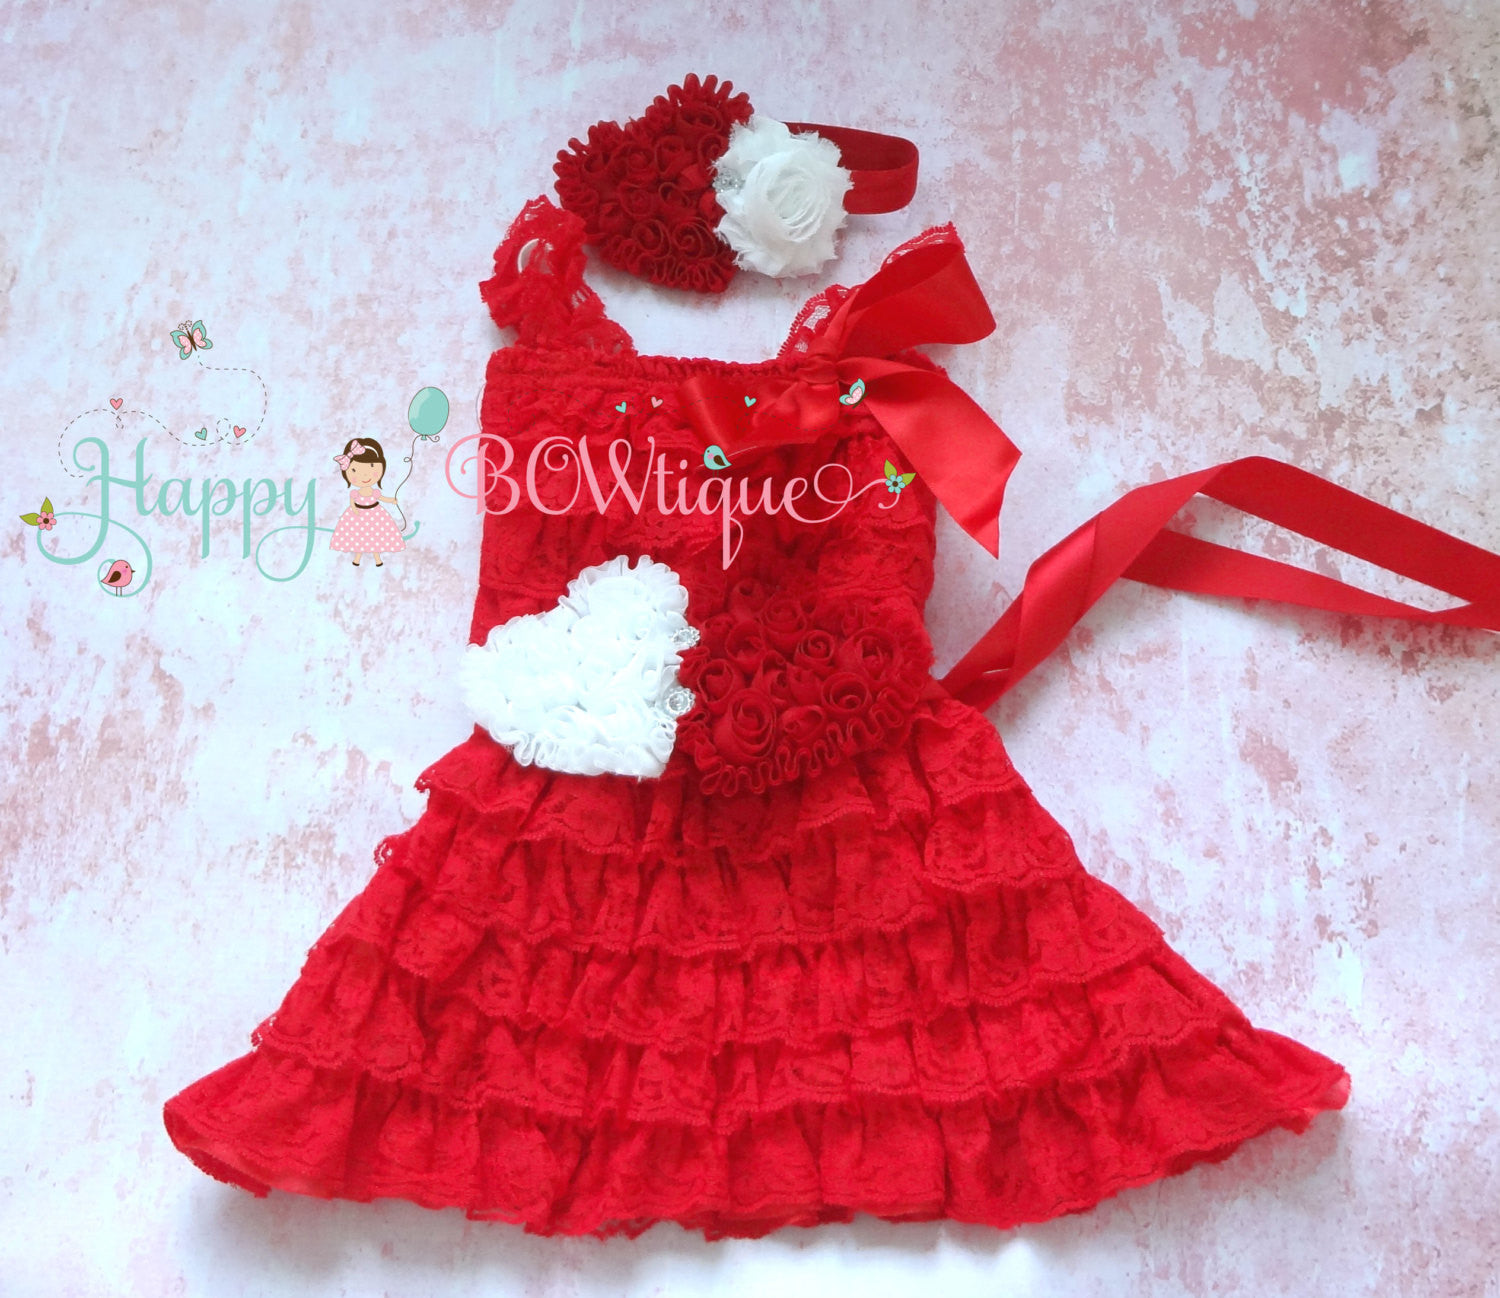 Red Heart Valentine Lace Dress - Happy BOWtique - children's clothing, Baby Girl clothing